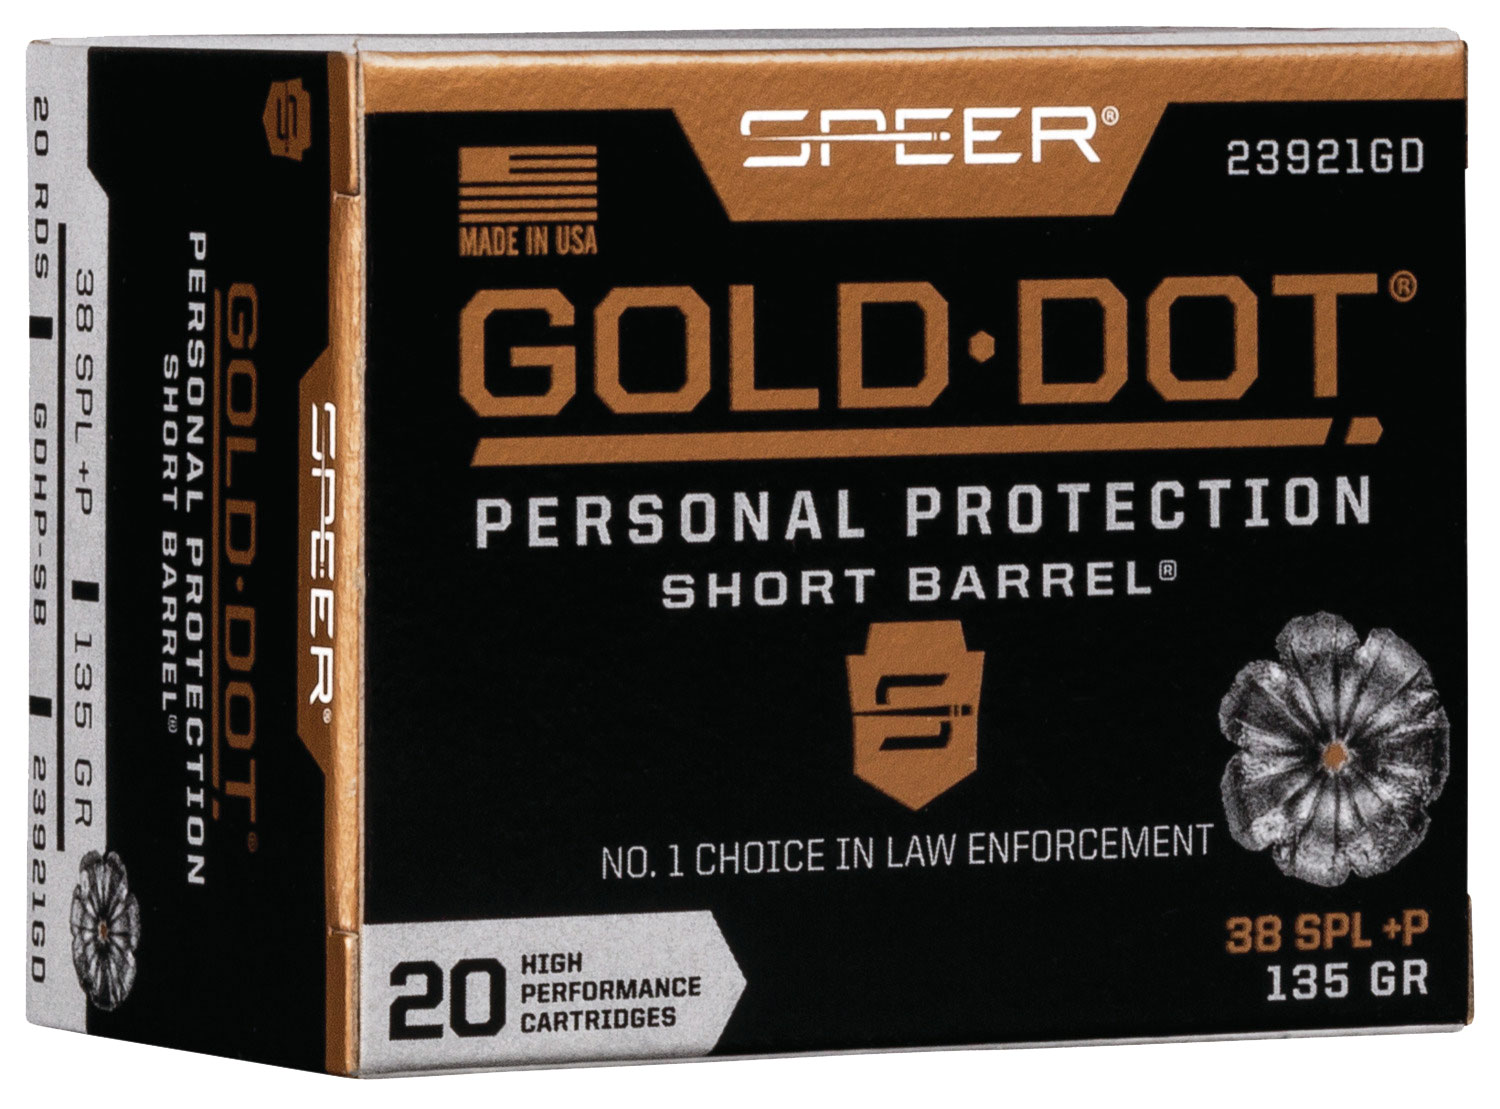 SPR GOLD DOT 38S+P 135G HP SB 20/200